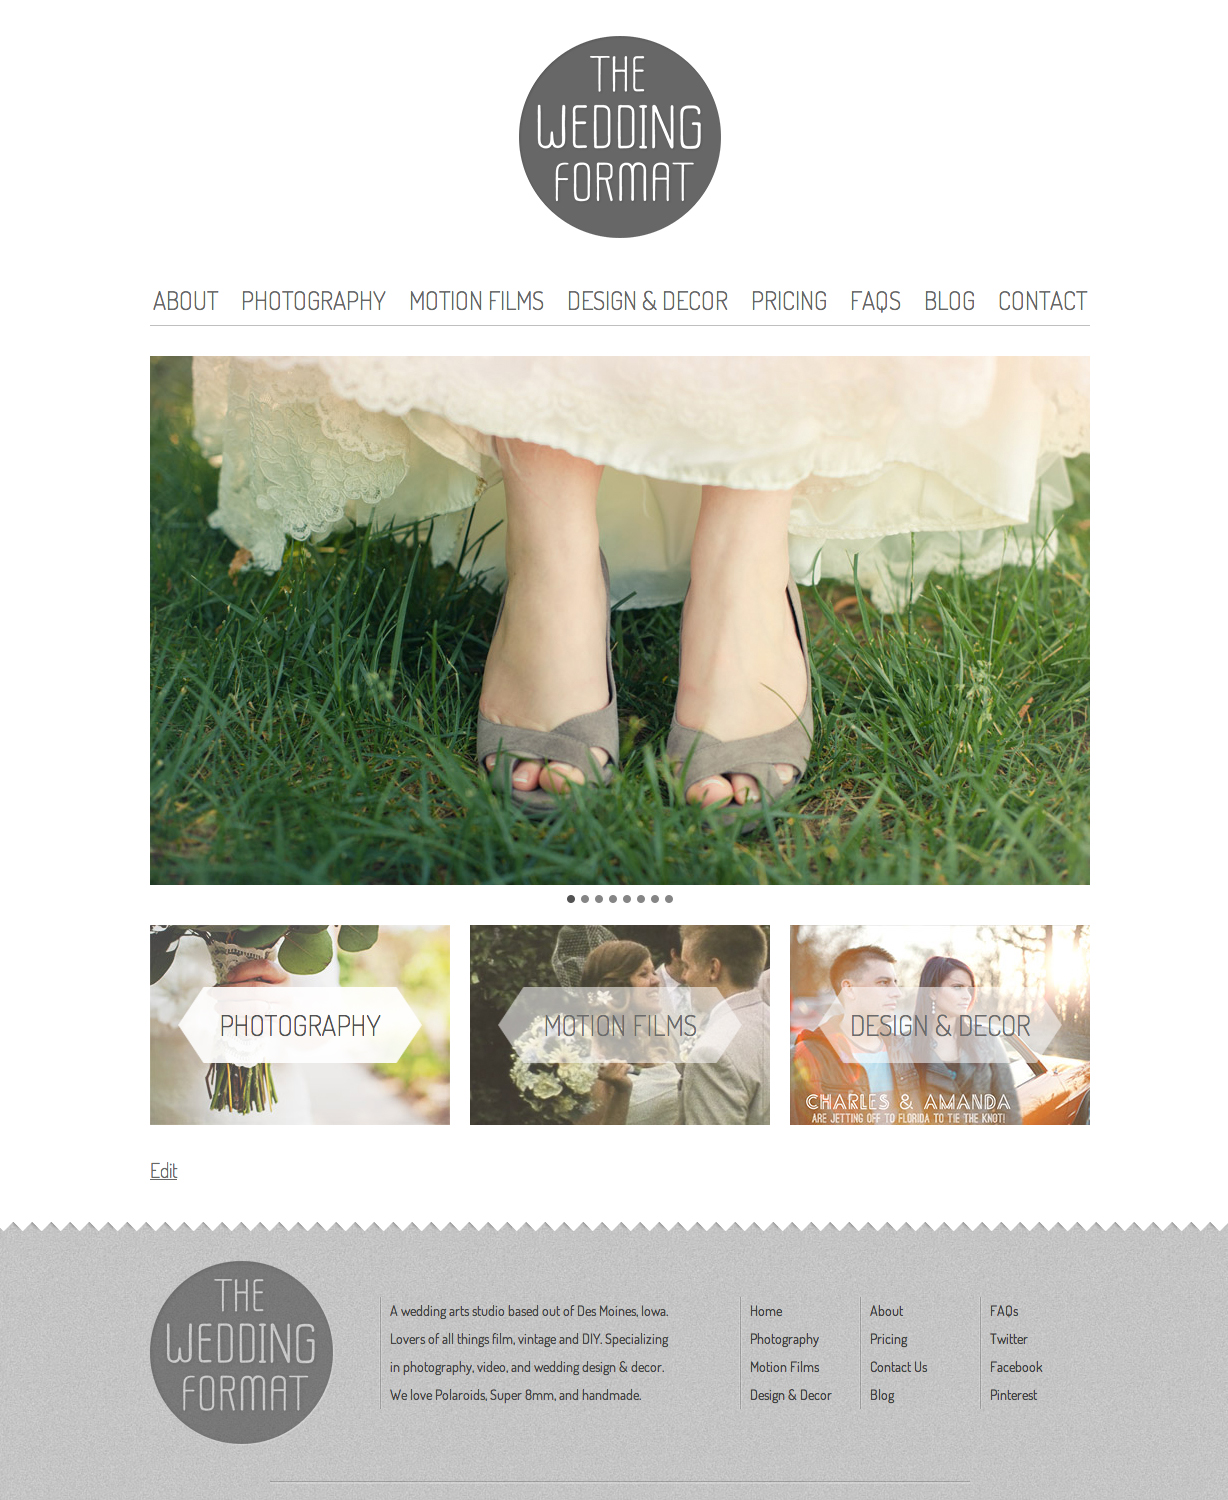 The Wedding Format image